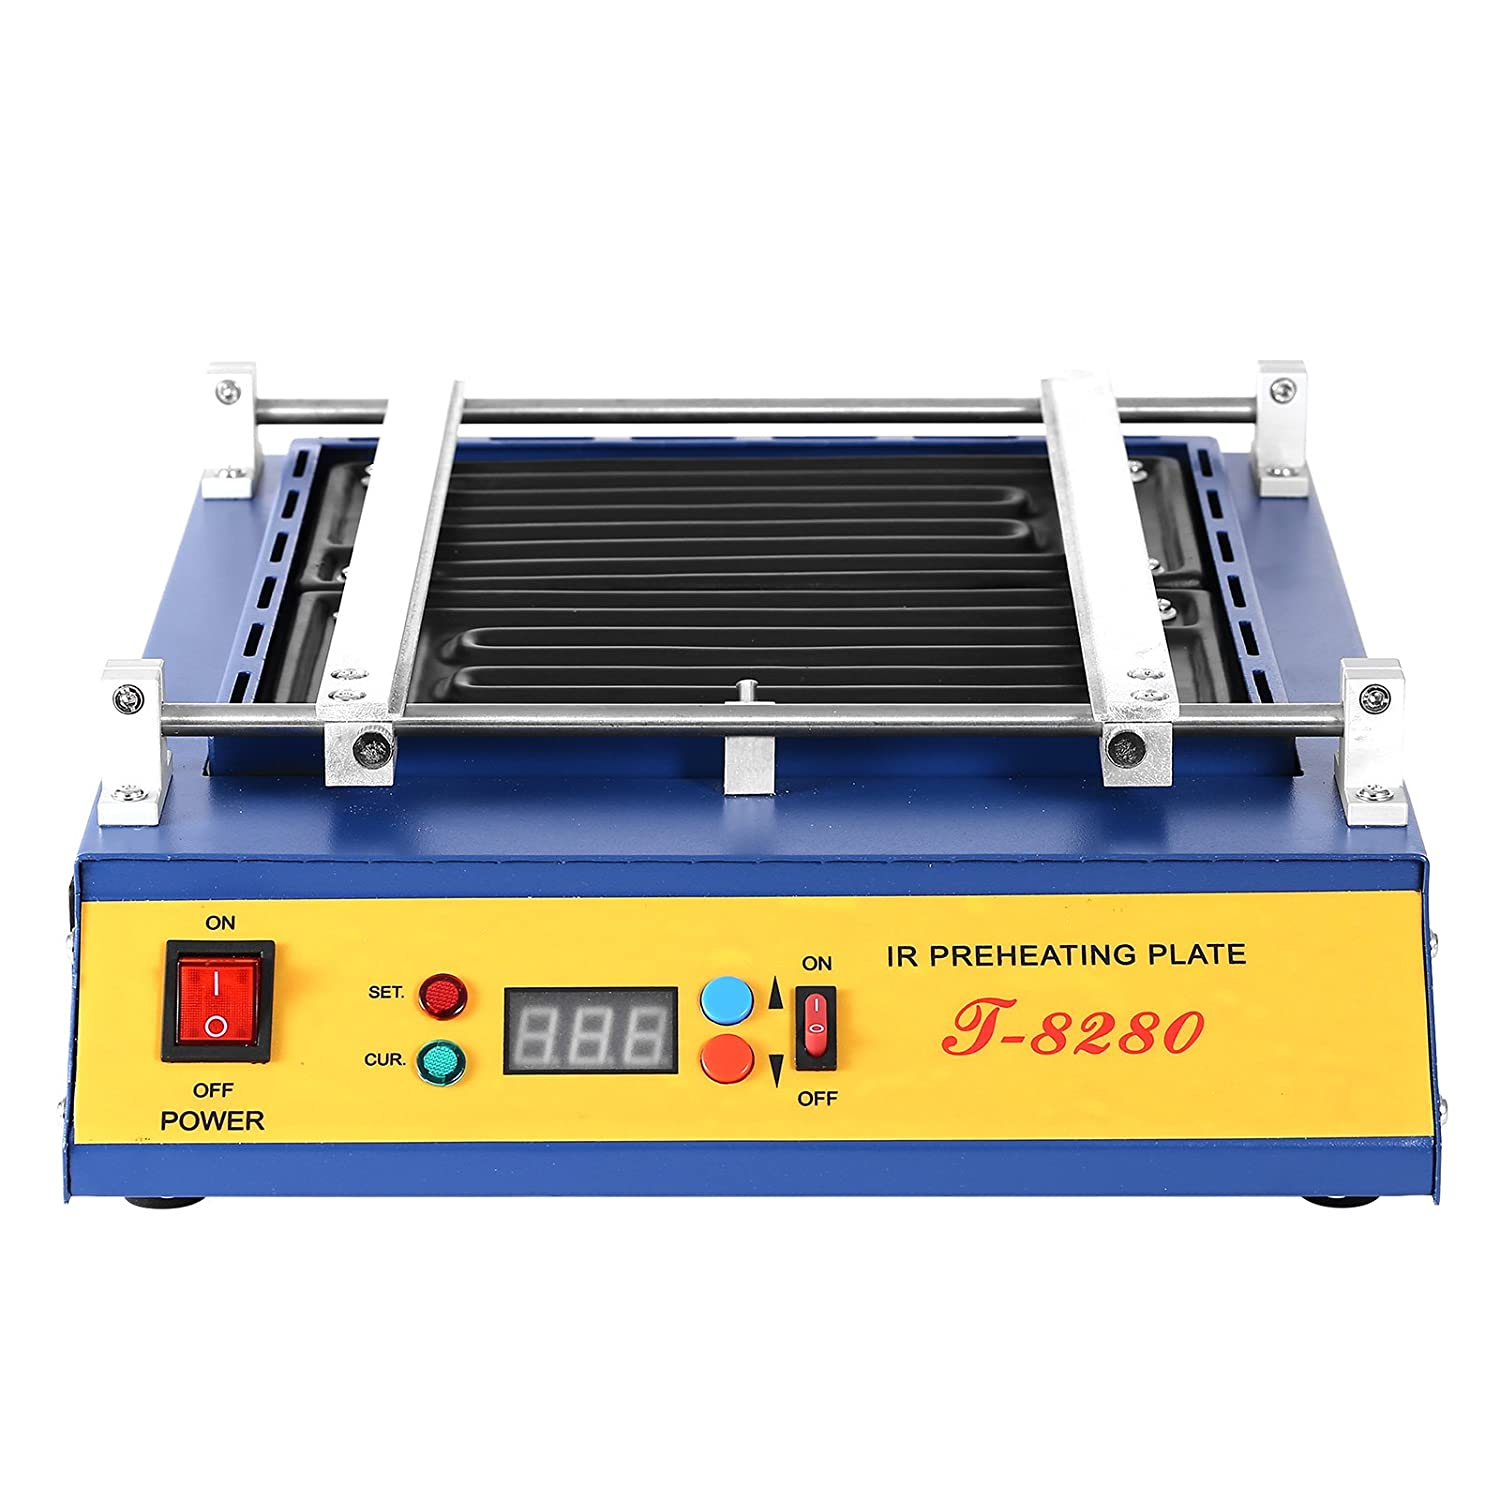 VEVOR Preheating Oven T8280 1600W Infrared Preheating Station Hot Plate PCB Preheater 280x270MM - - Amazon.com